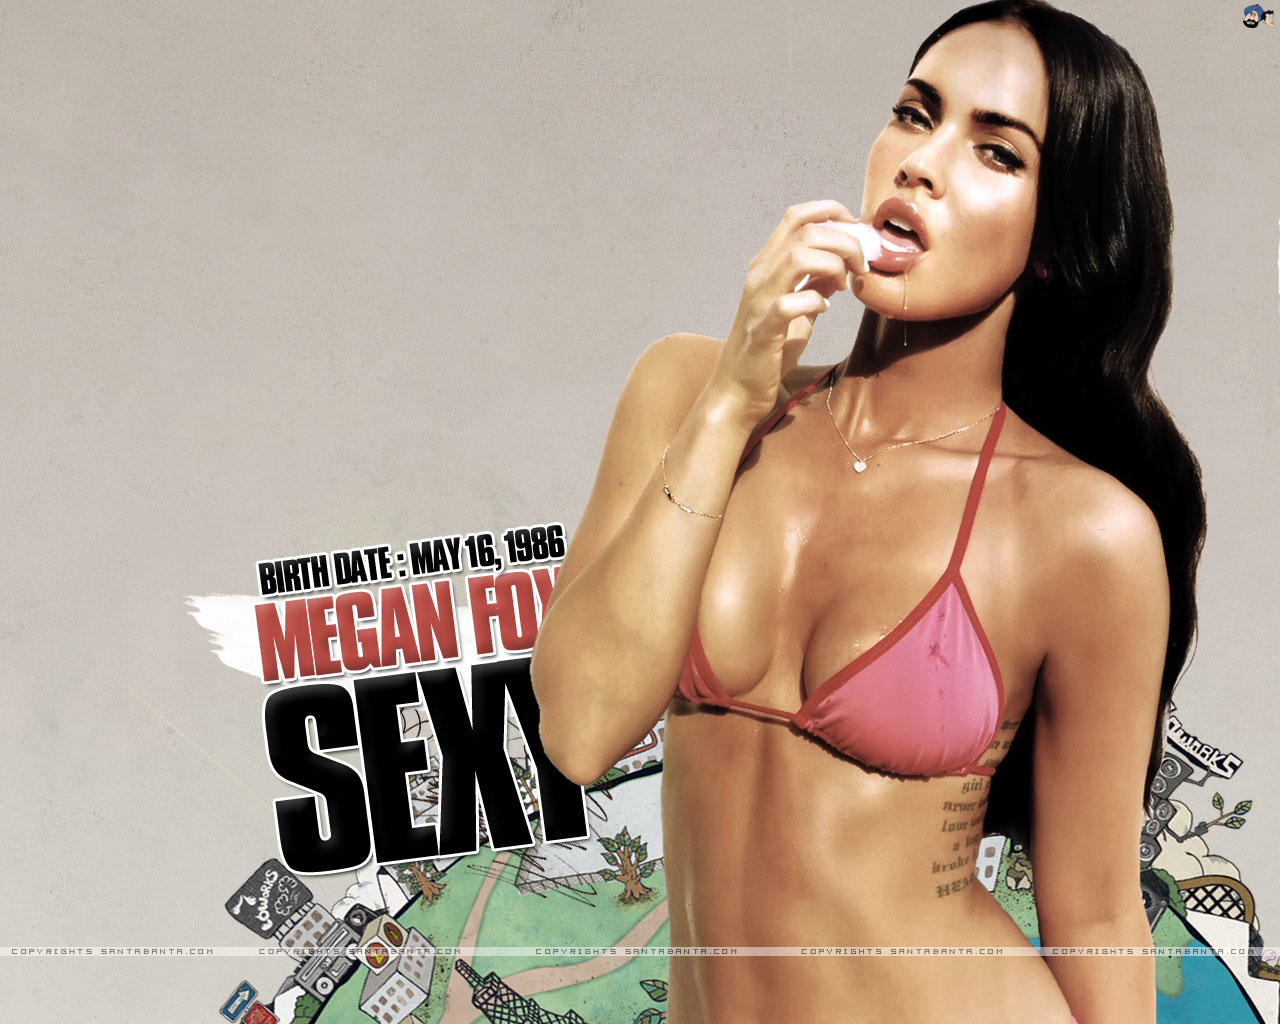 http://3.bp.blogspot.com/-yrYwRileTgA/ThH_jdqpJXI/AAAAAAAAACE/9_lZ1uA9C34/s1600/Megan-Fox-Hot-Wallpapers-5.jpg